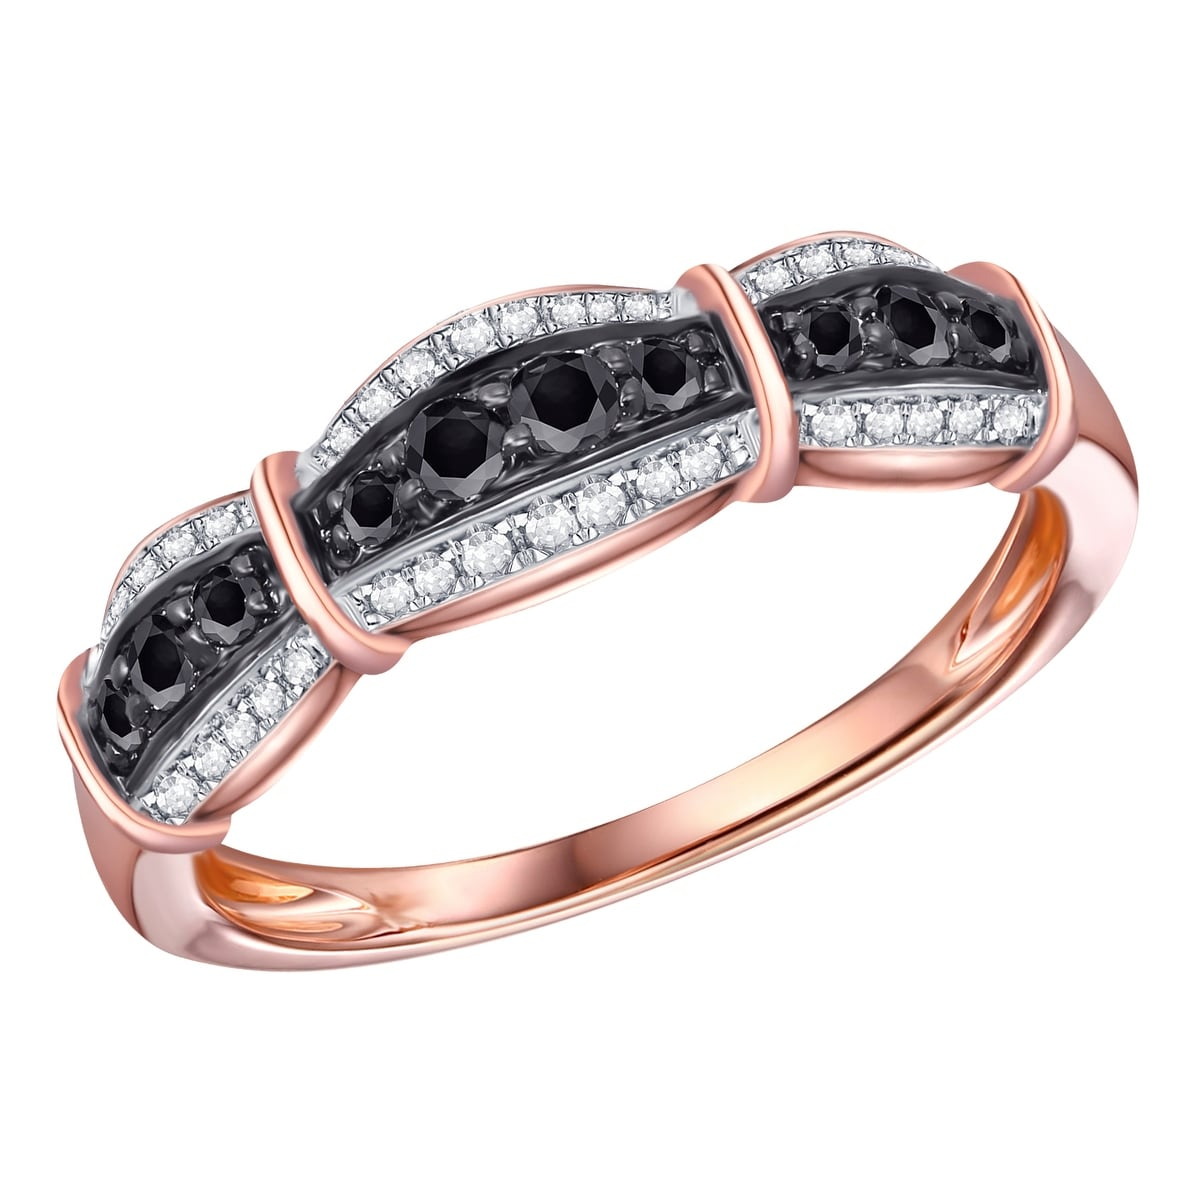 Prism Jewel 1.06 Carat Round Cut Black Diamond 7-Stone Prong Setting Band 10k Gold